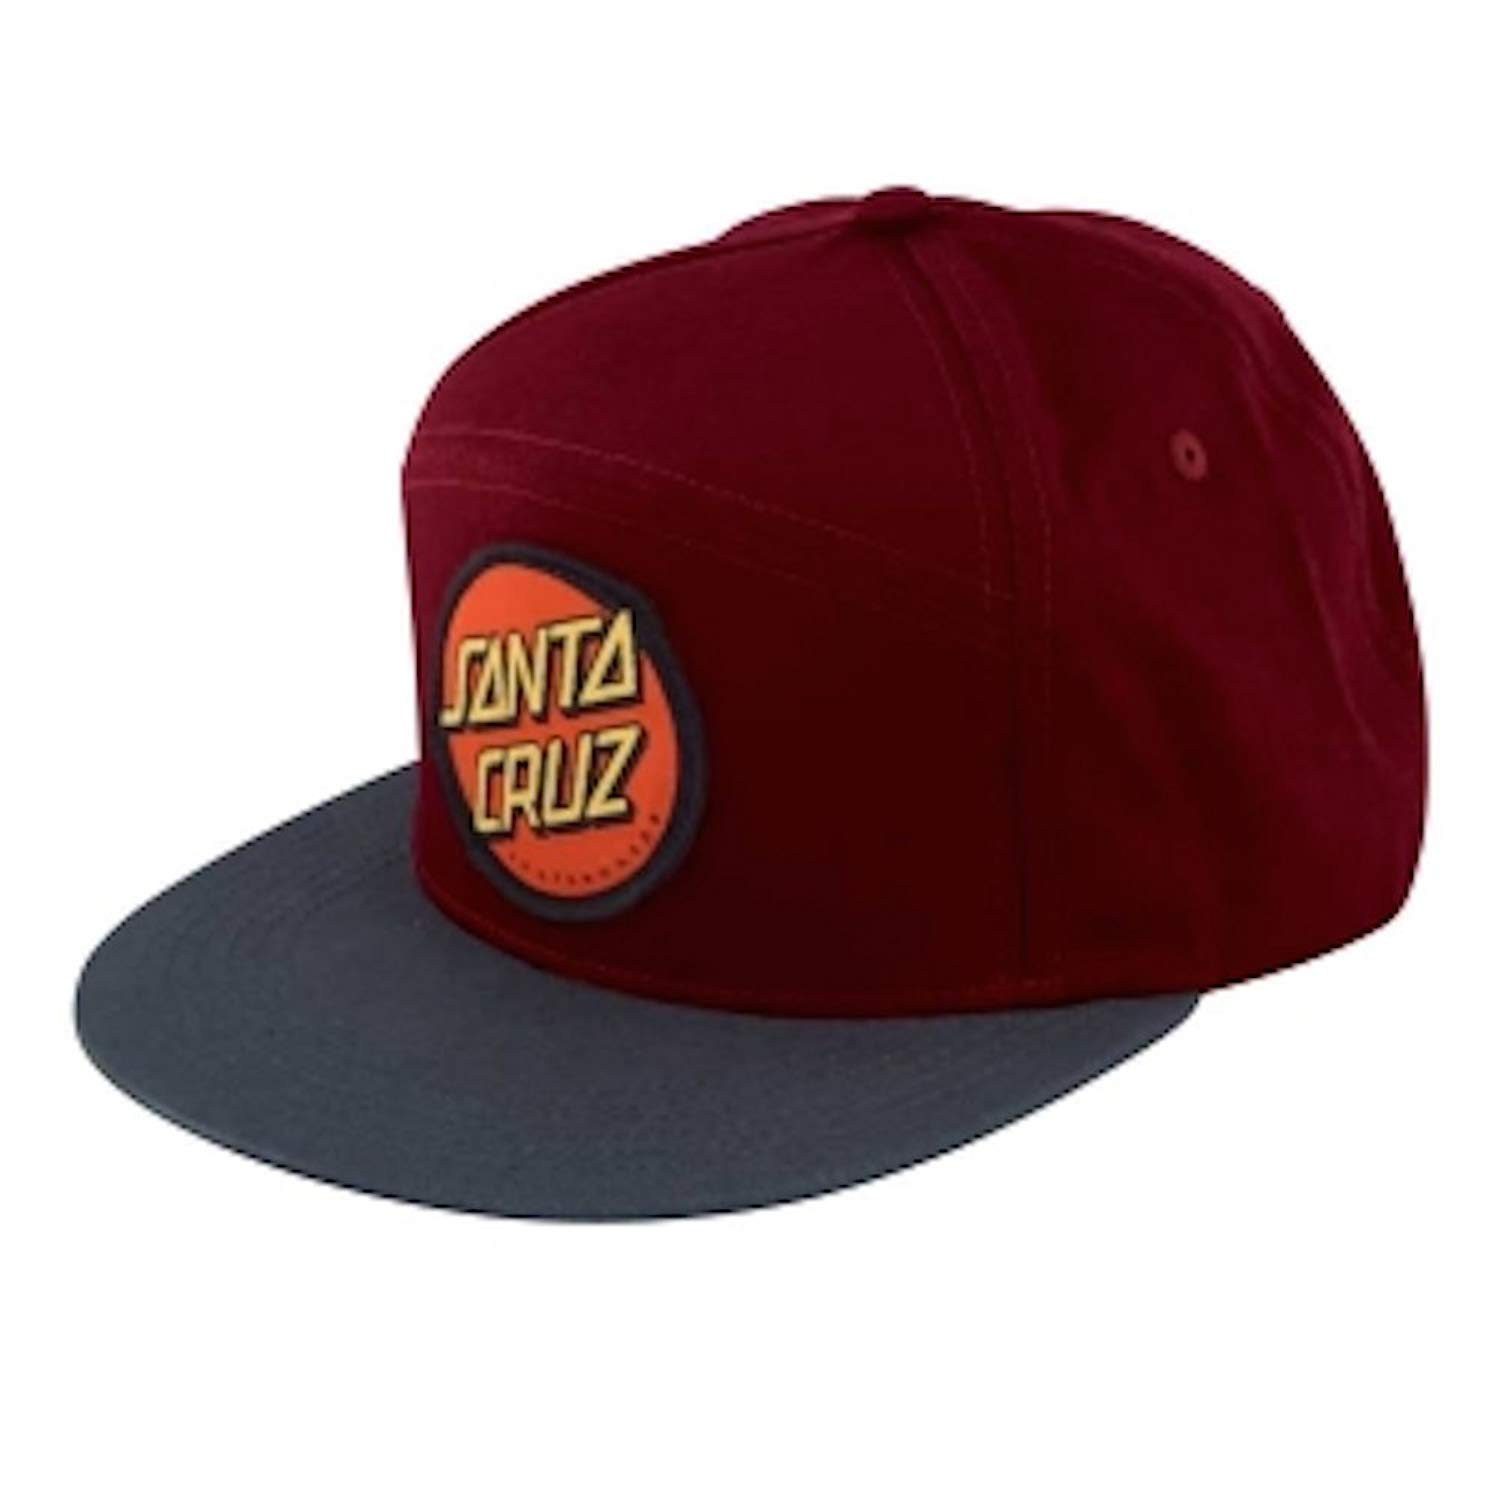 4779aaa8866cb Get Quotations · Santa Cruz Dot Snapback Hat - Maroon Charcoal